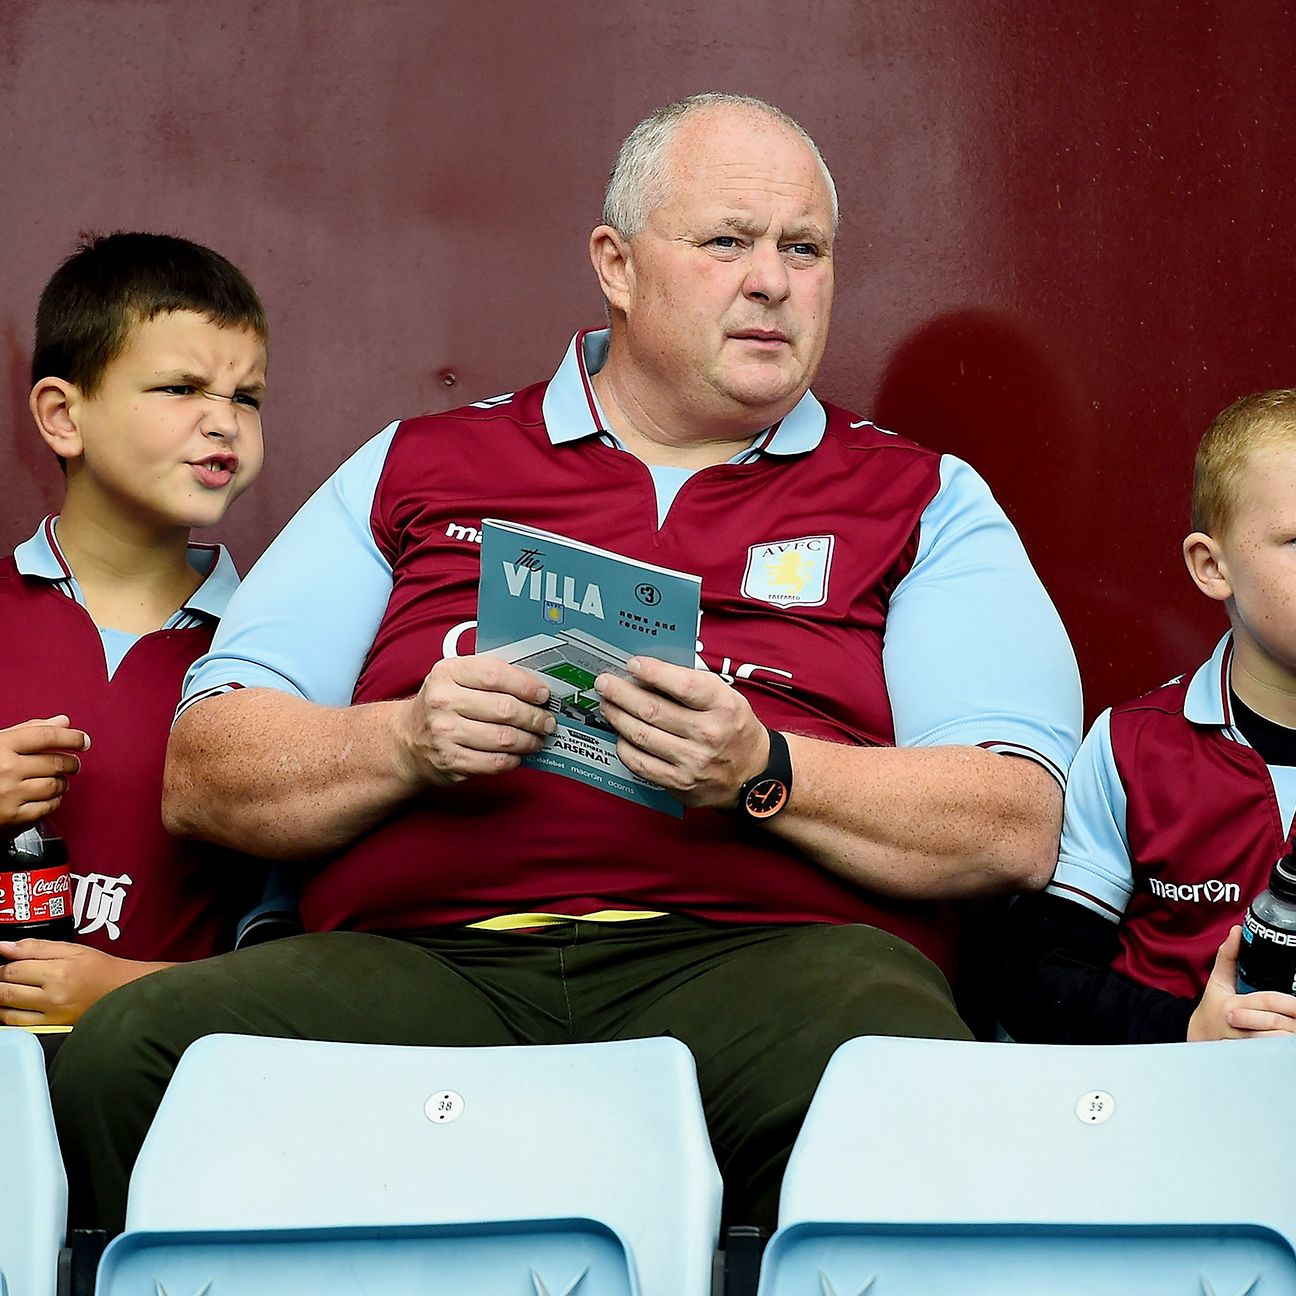 Aston Villa fans young and old are frustrated with the unstable state of the club.